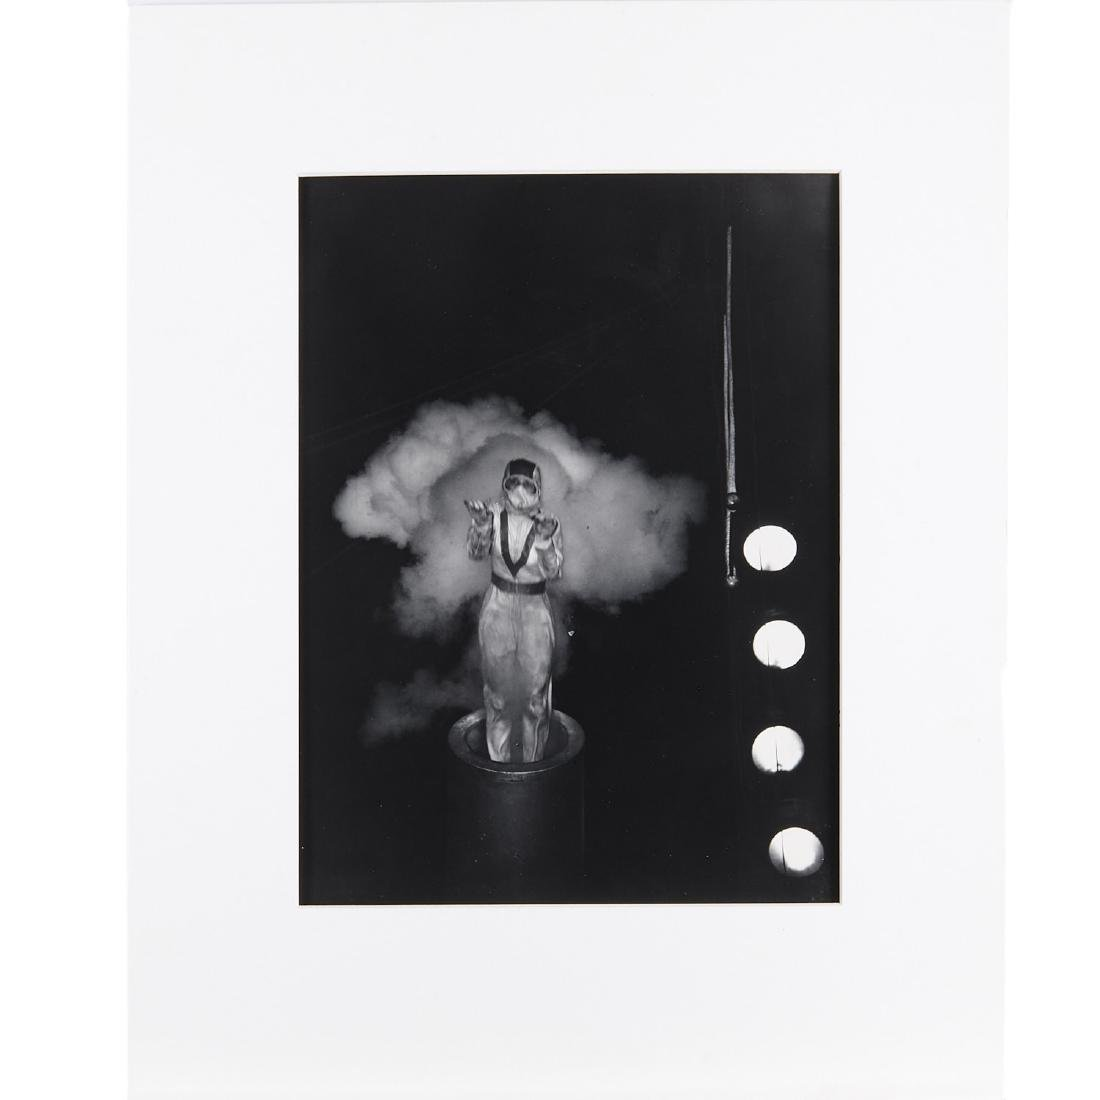 Weegee, photograph